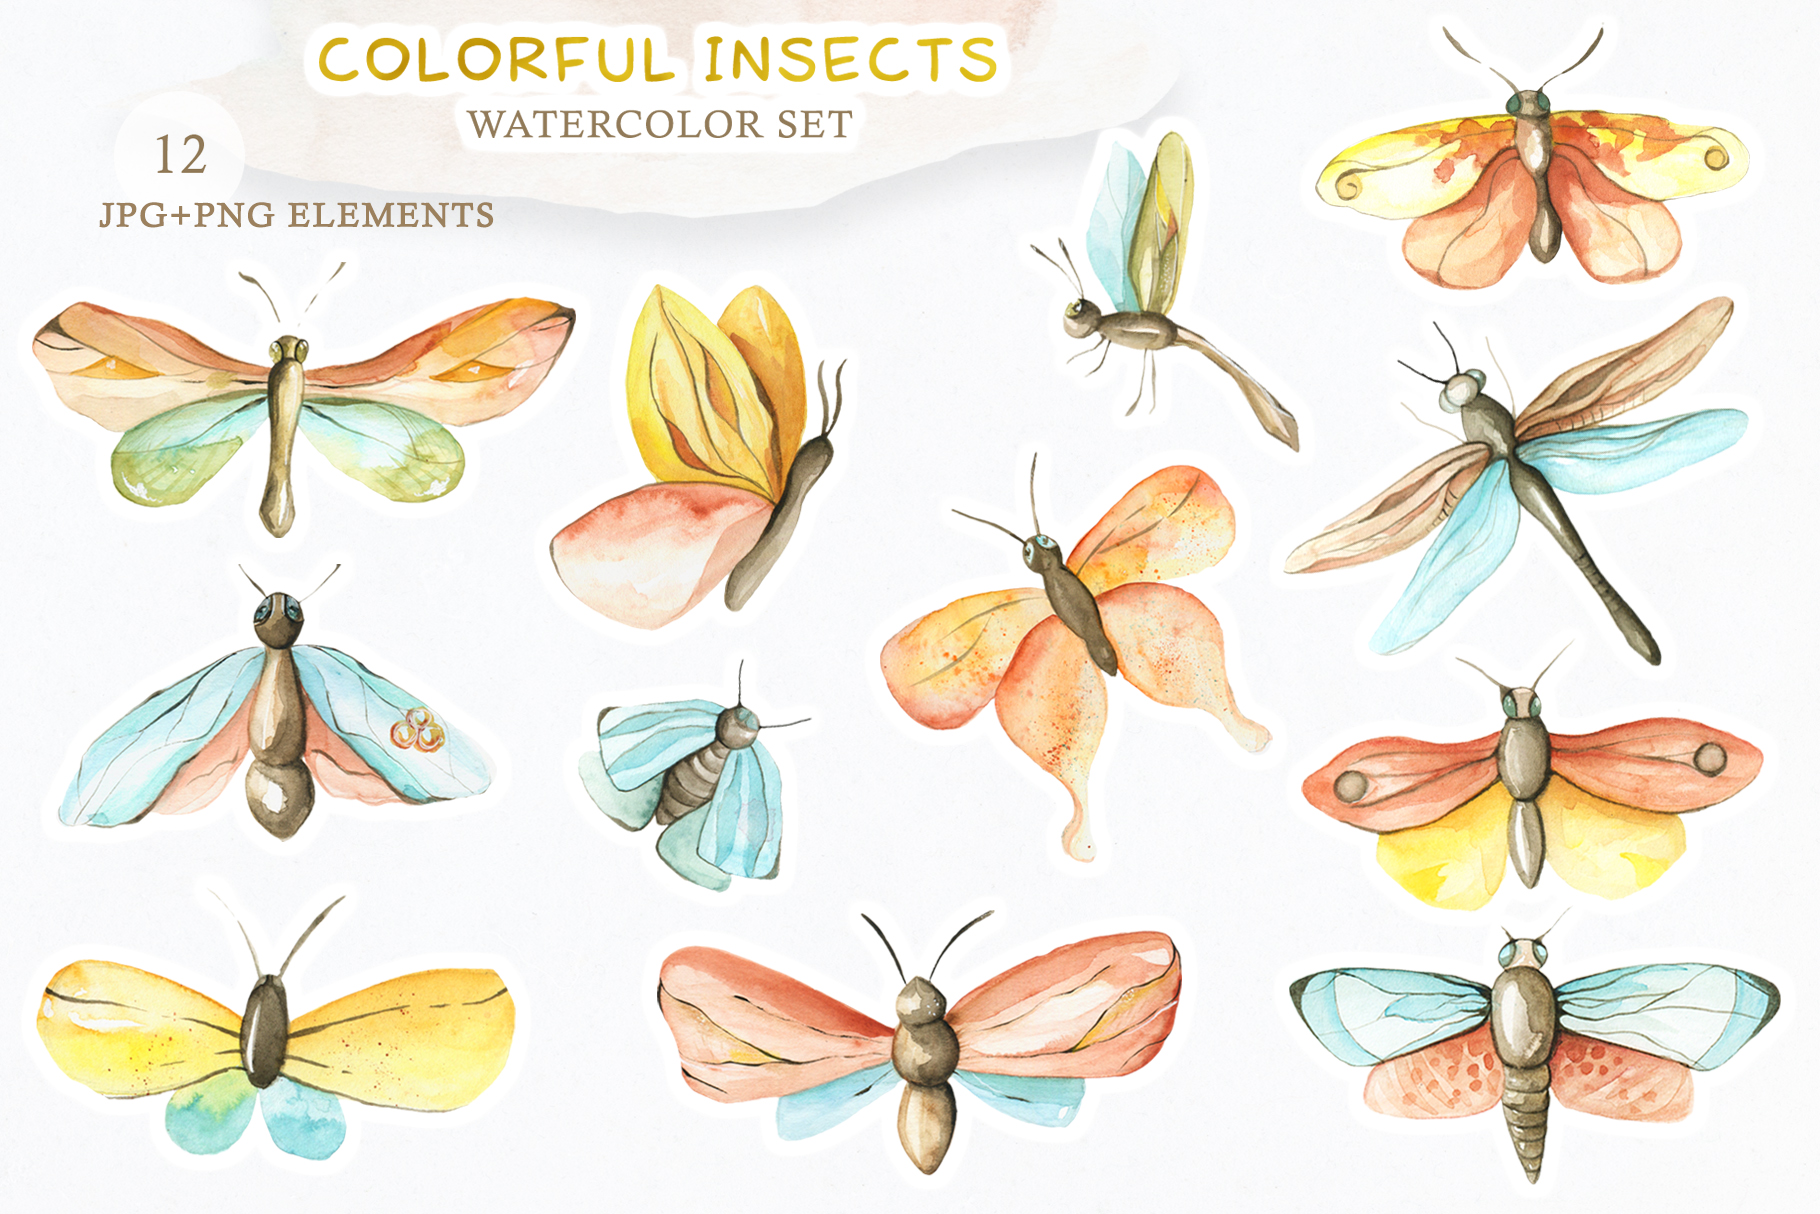 Watercolor Set Colorful Insects example image 2